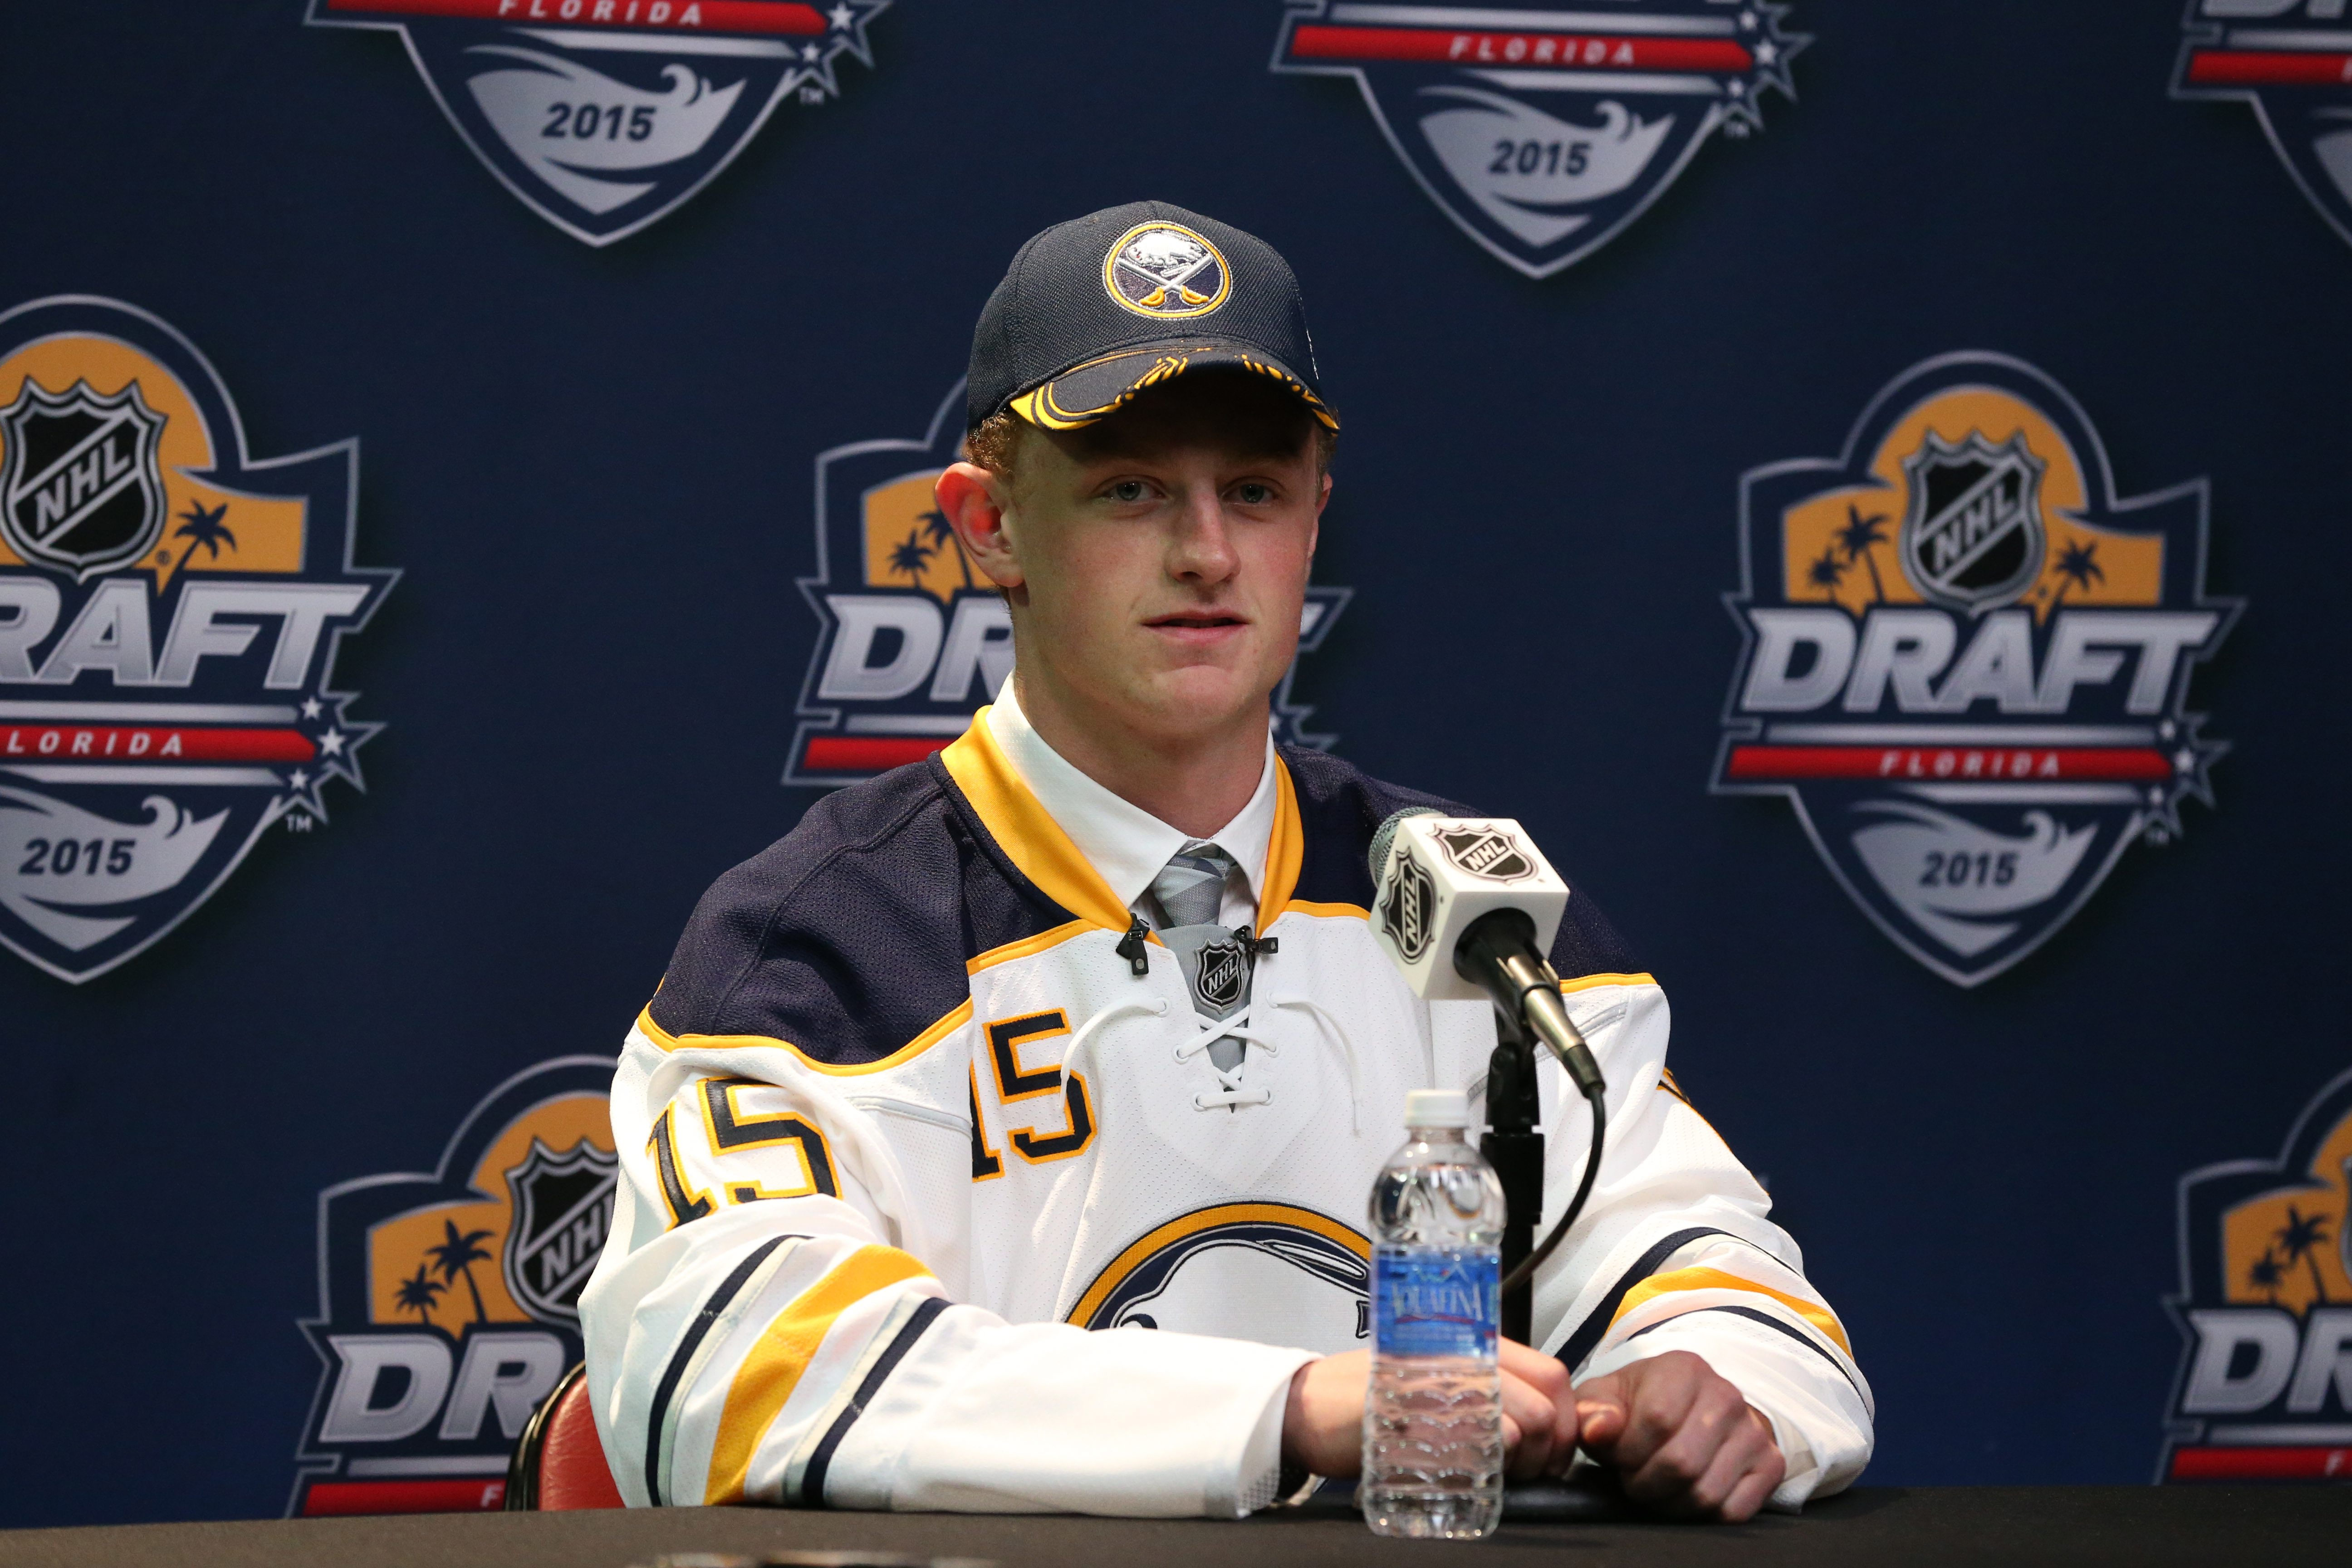 Sabres draft pick Jack Eichel, at age 18, comes across as confident and self-assured without being arrogant.